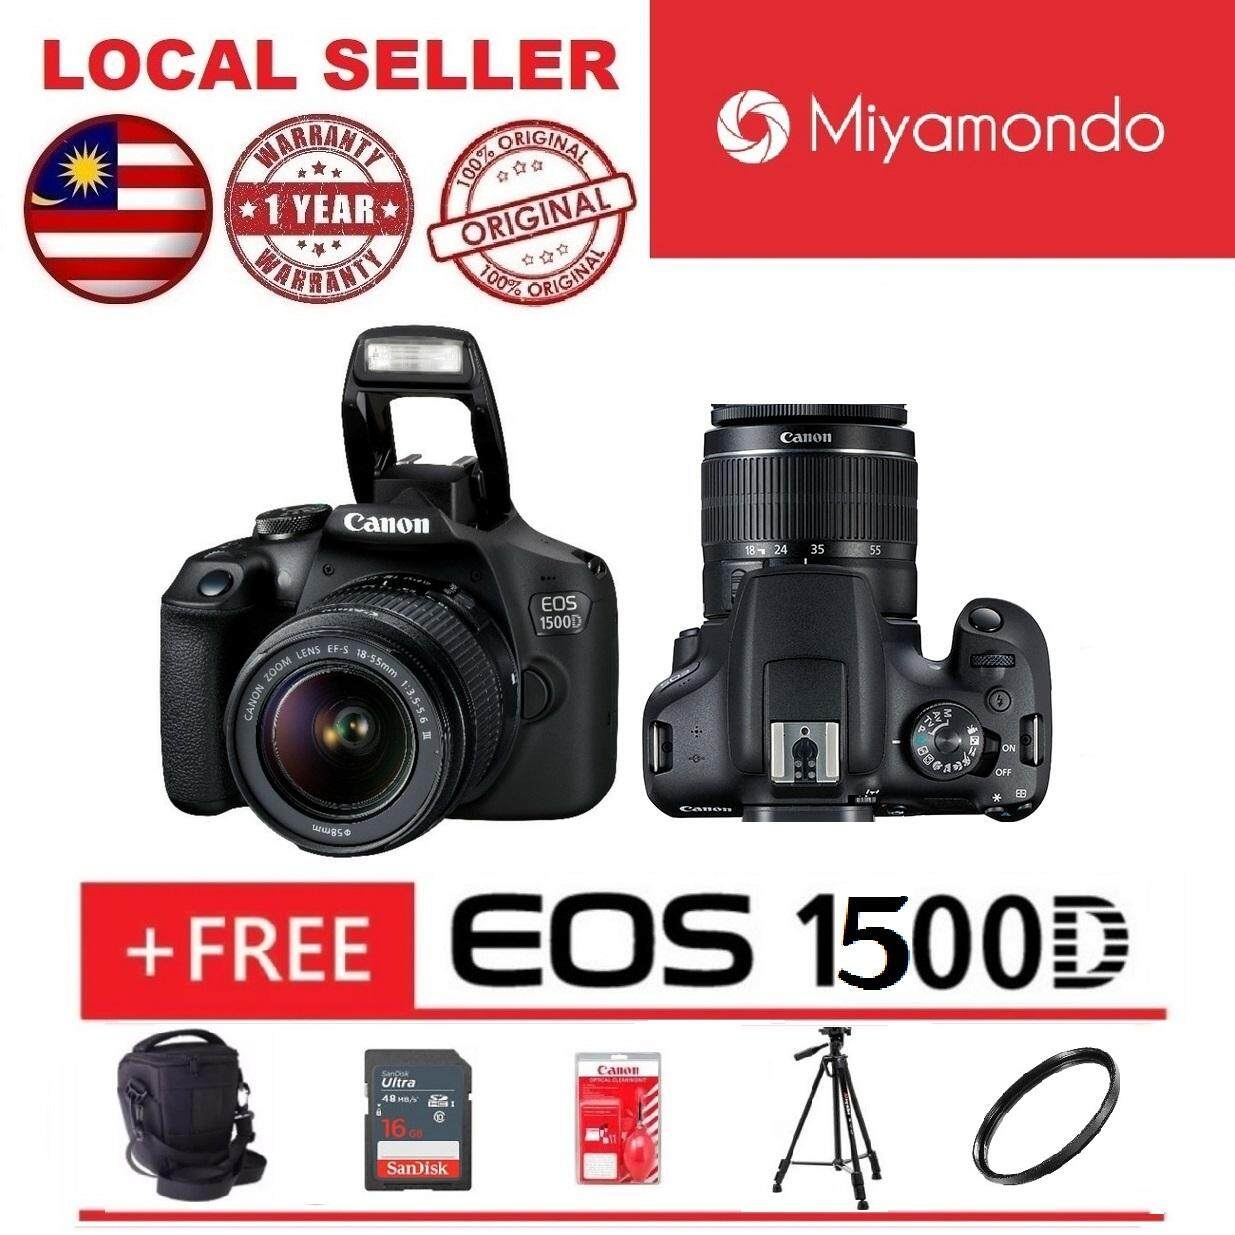 Canon Cameras Dslrs Slrs Price In Malaysia Best Digital Eos 1300d With Lens 18 55mm Is Ii 1500d 16gb Bag Tripod Cleaning